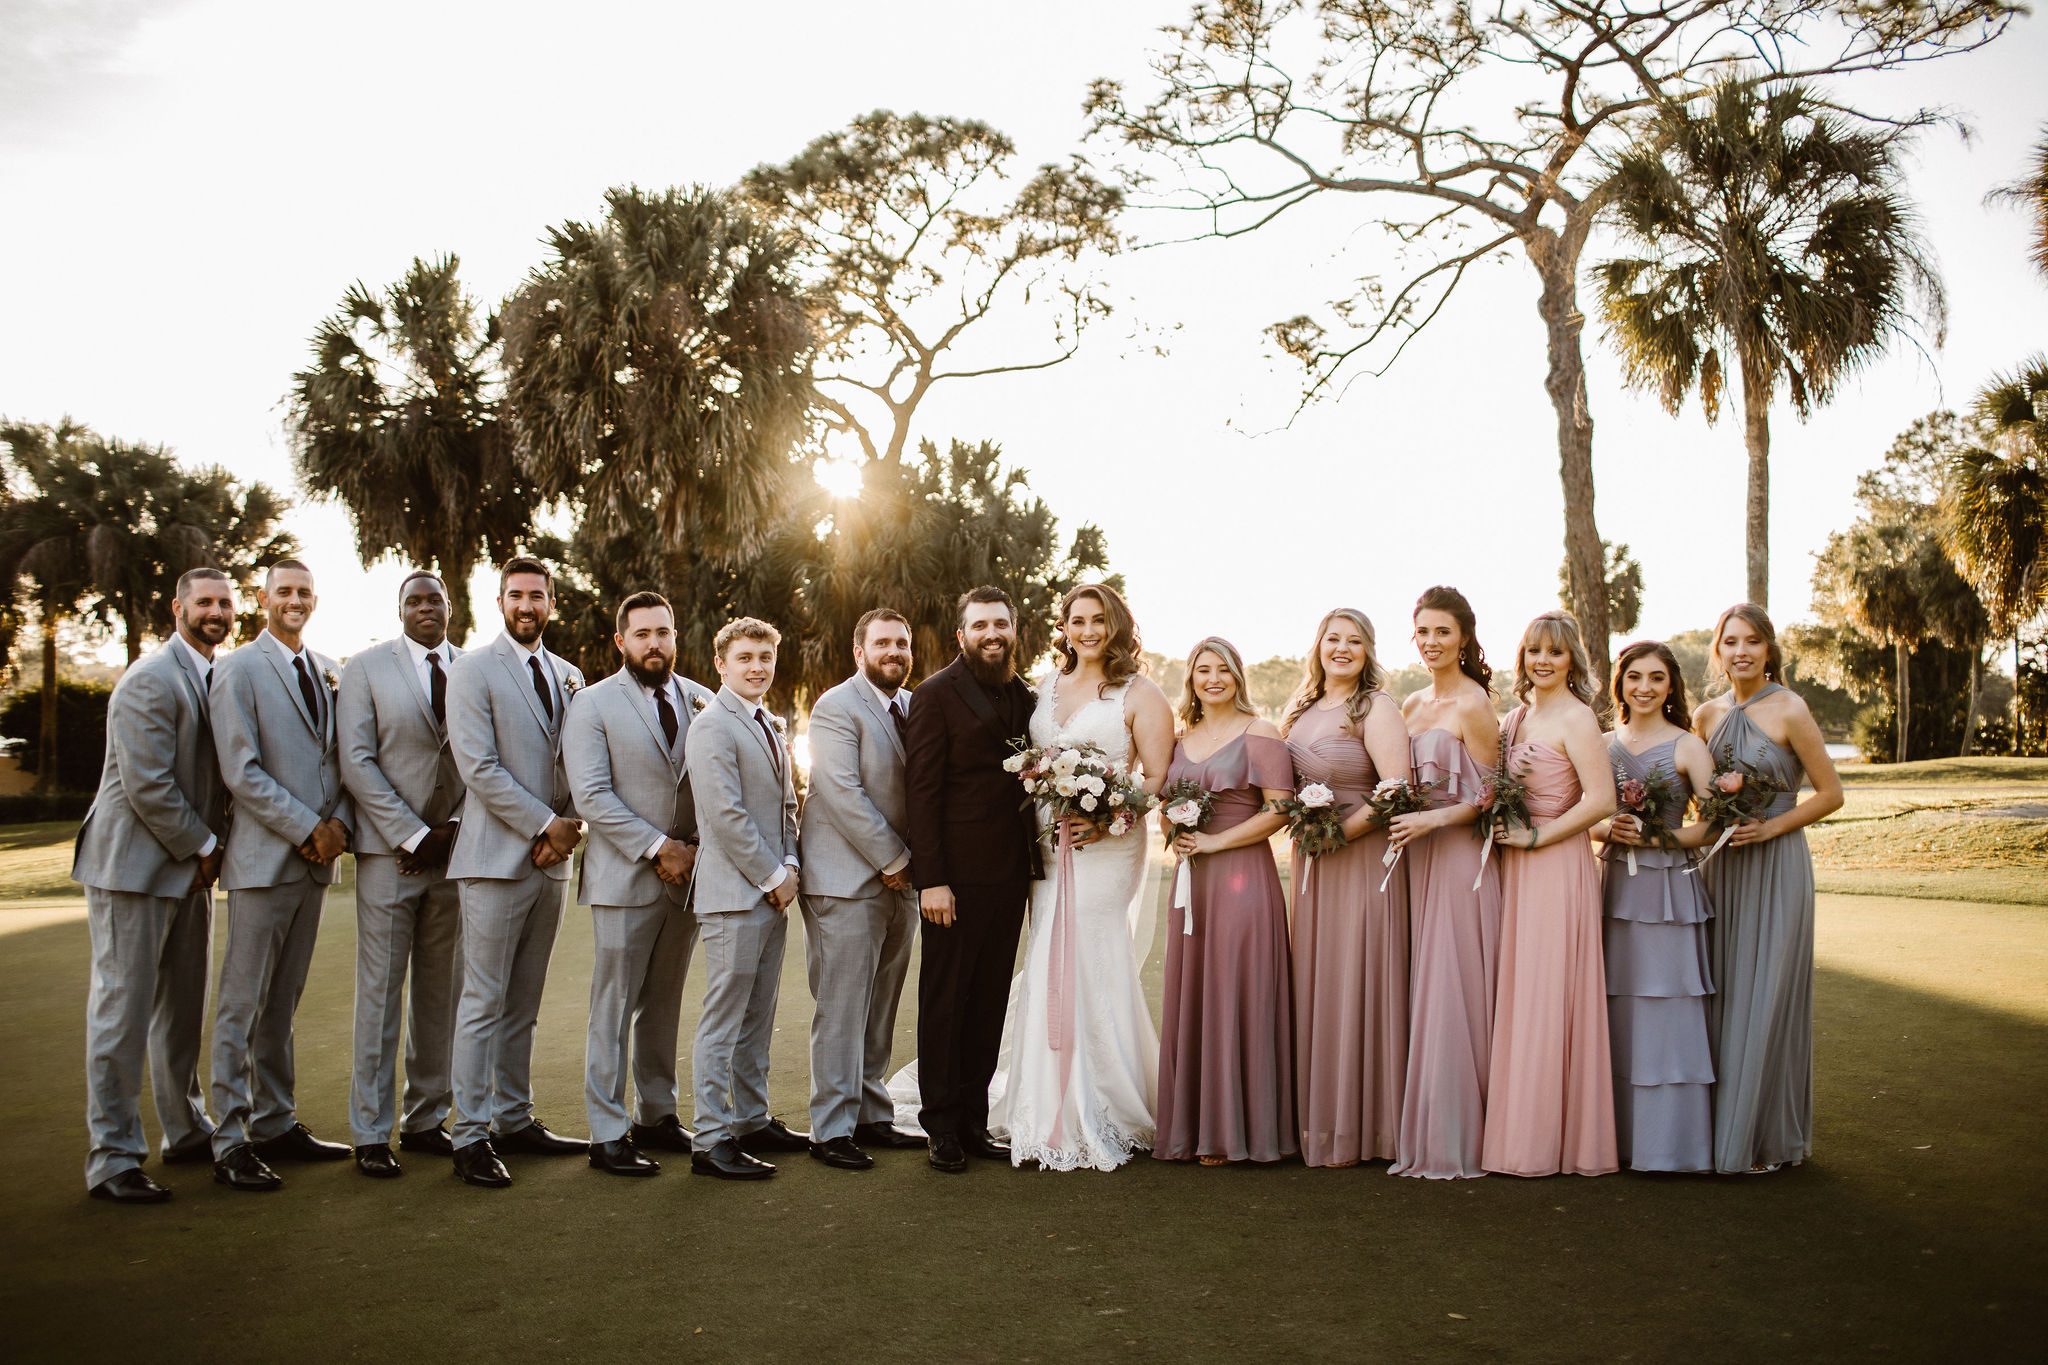 wedding party in mauve and grey